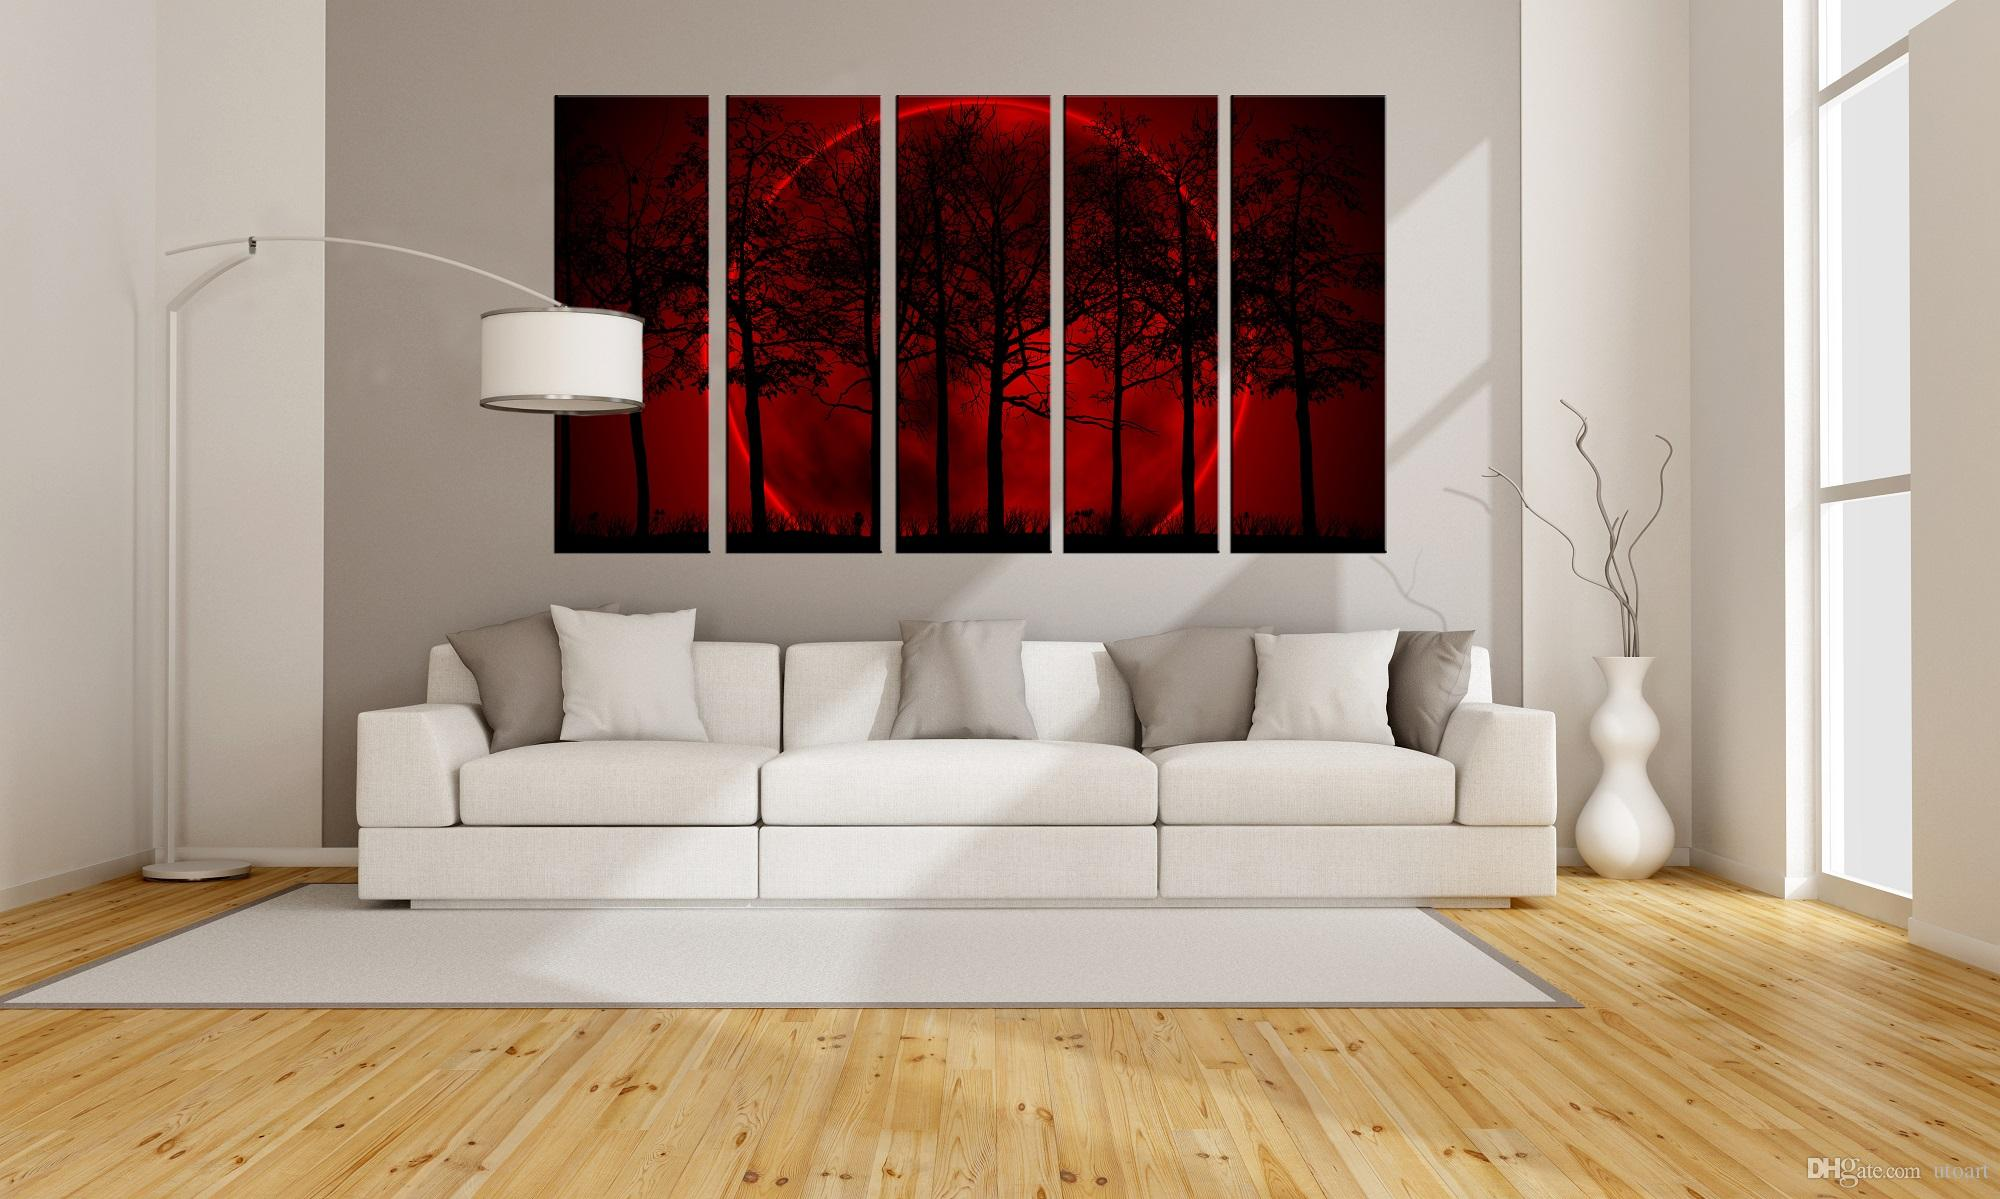 Office wall prints Graphic Designer 2019 Panels Modern Wall Painting Wall Picture Office Wall Decor Painting Of Red Moon Tree Hd Image Giclee Prints For Wholesale From Utoart Dhgate 2019 Panels Modern Wall Painting Wall Picture Office Wall Decor